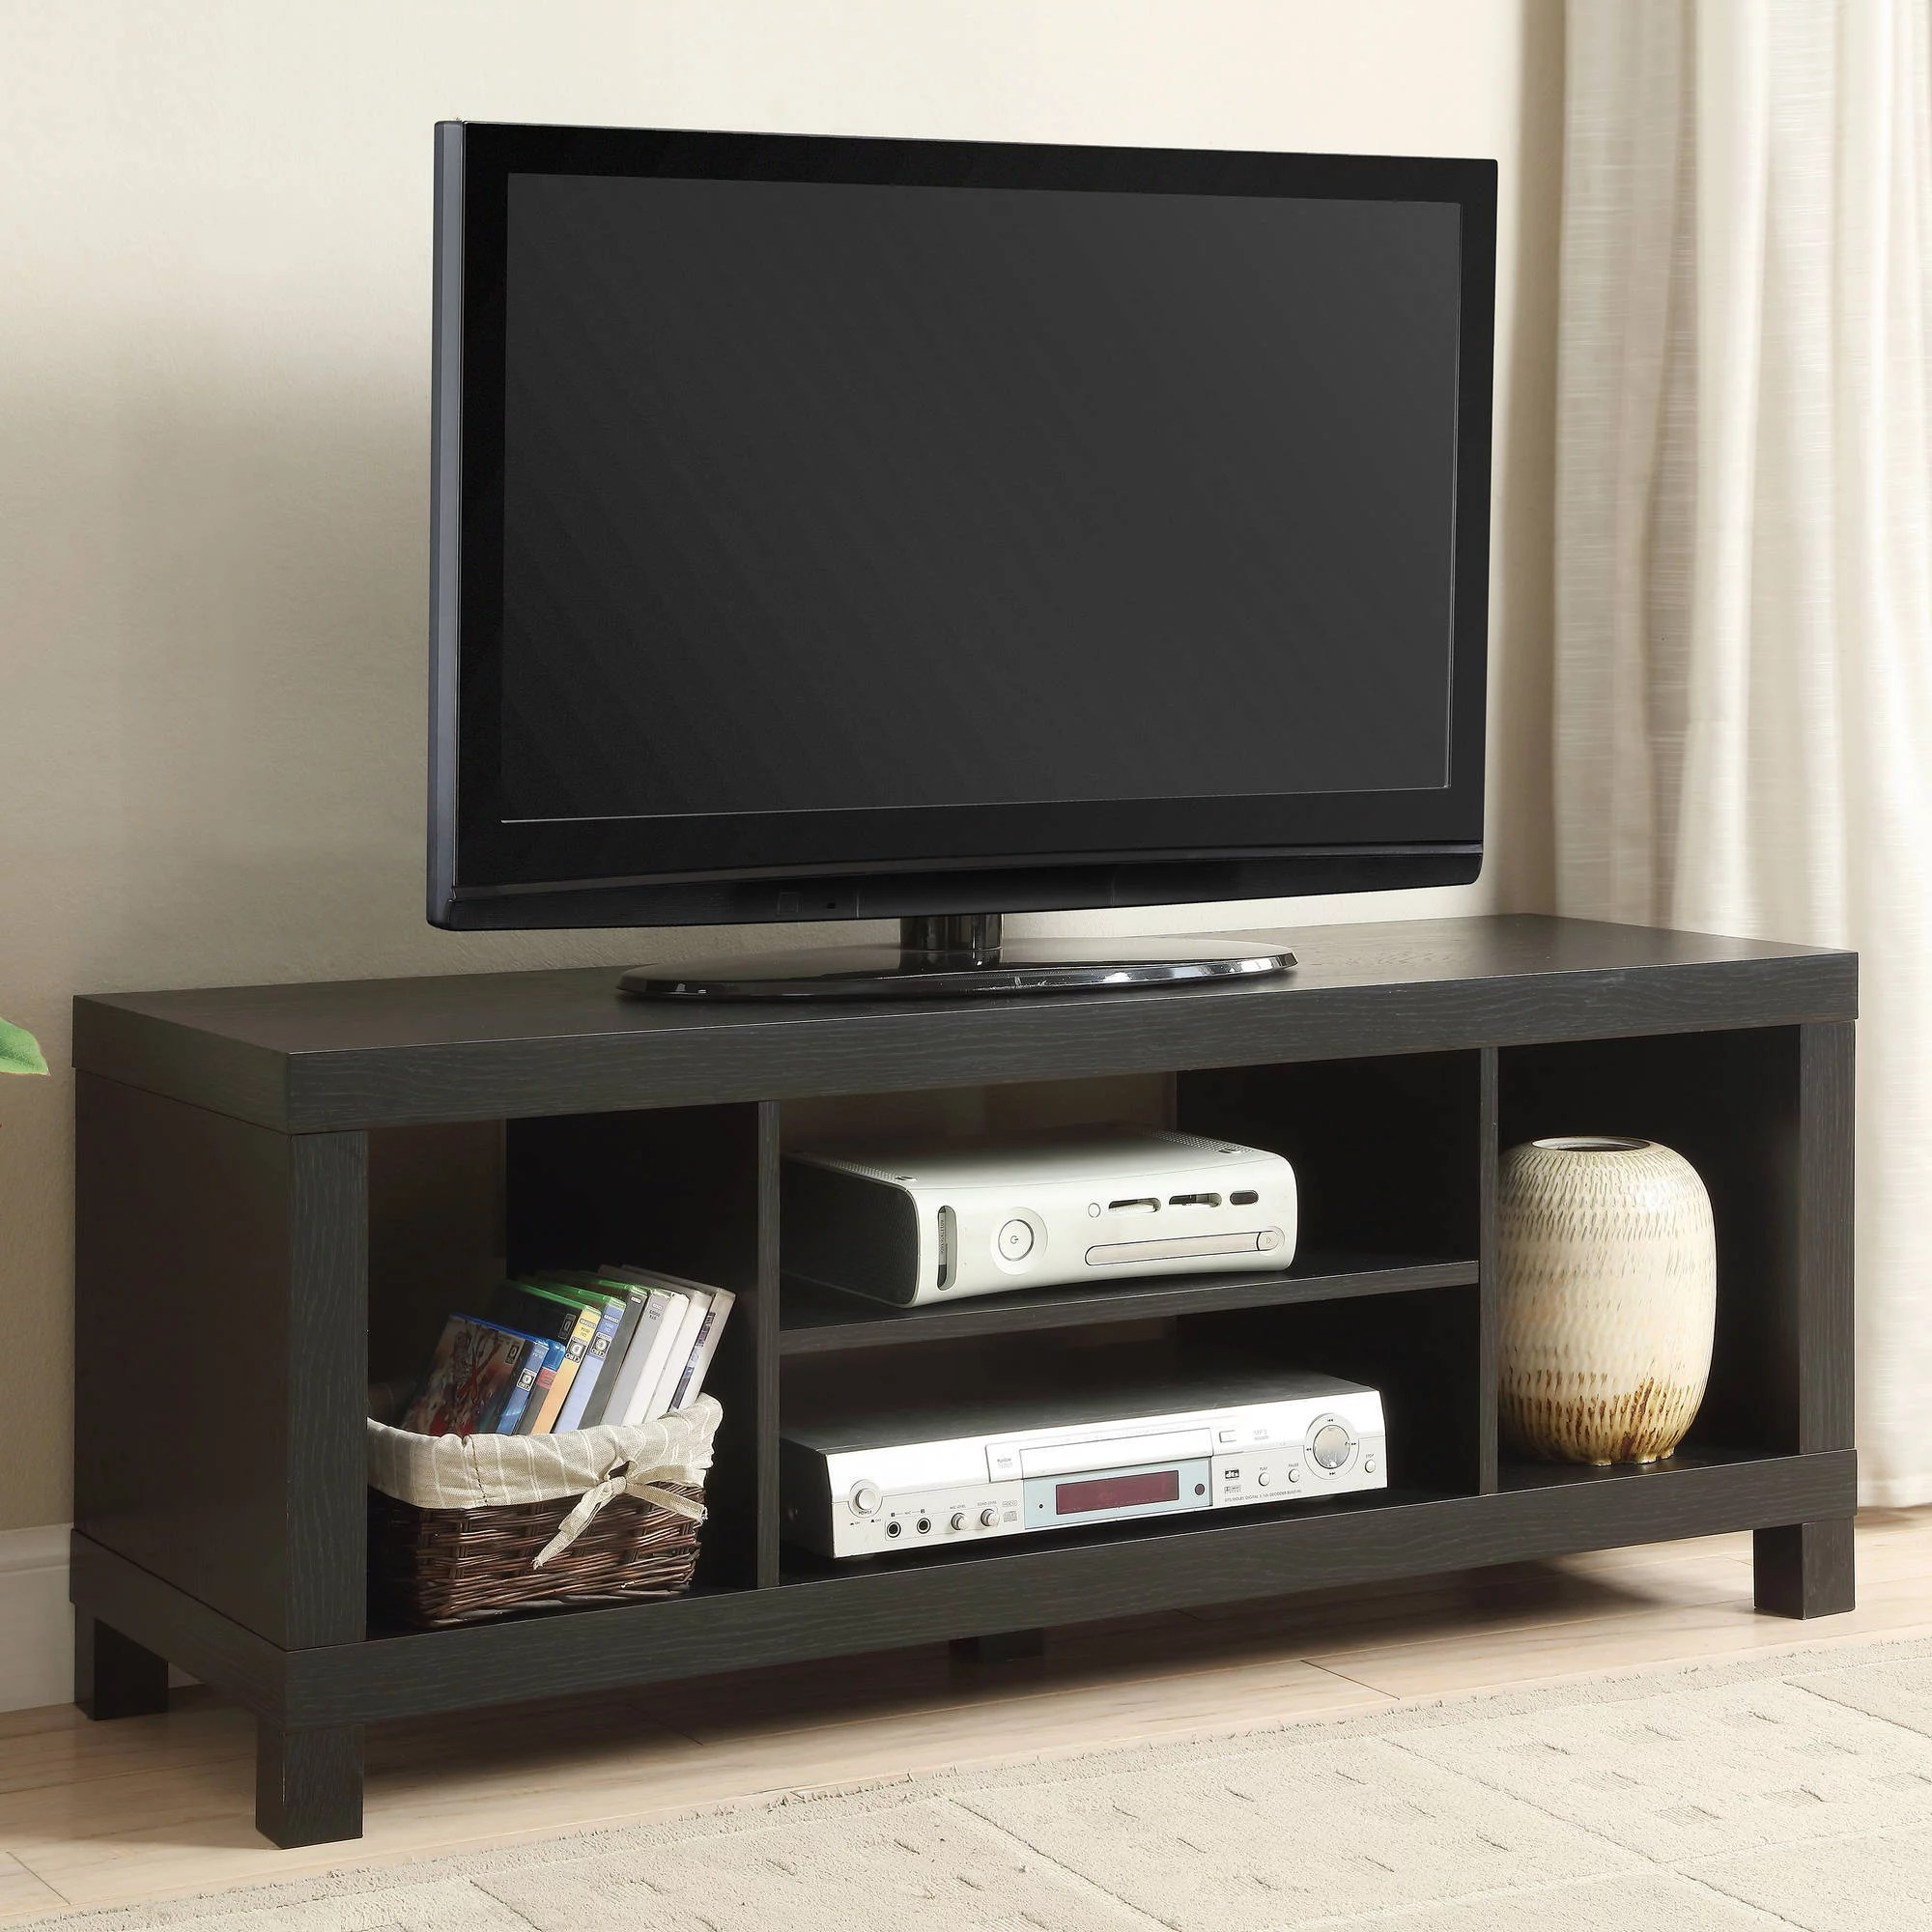 Tv Stand Tv Stand Entertainment Center Home Theater Media Storage